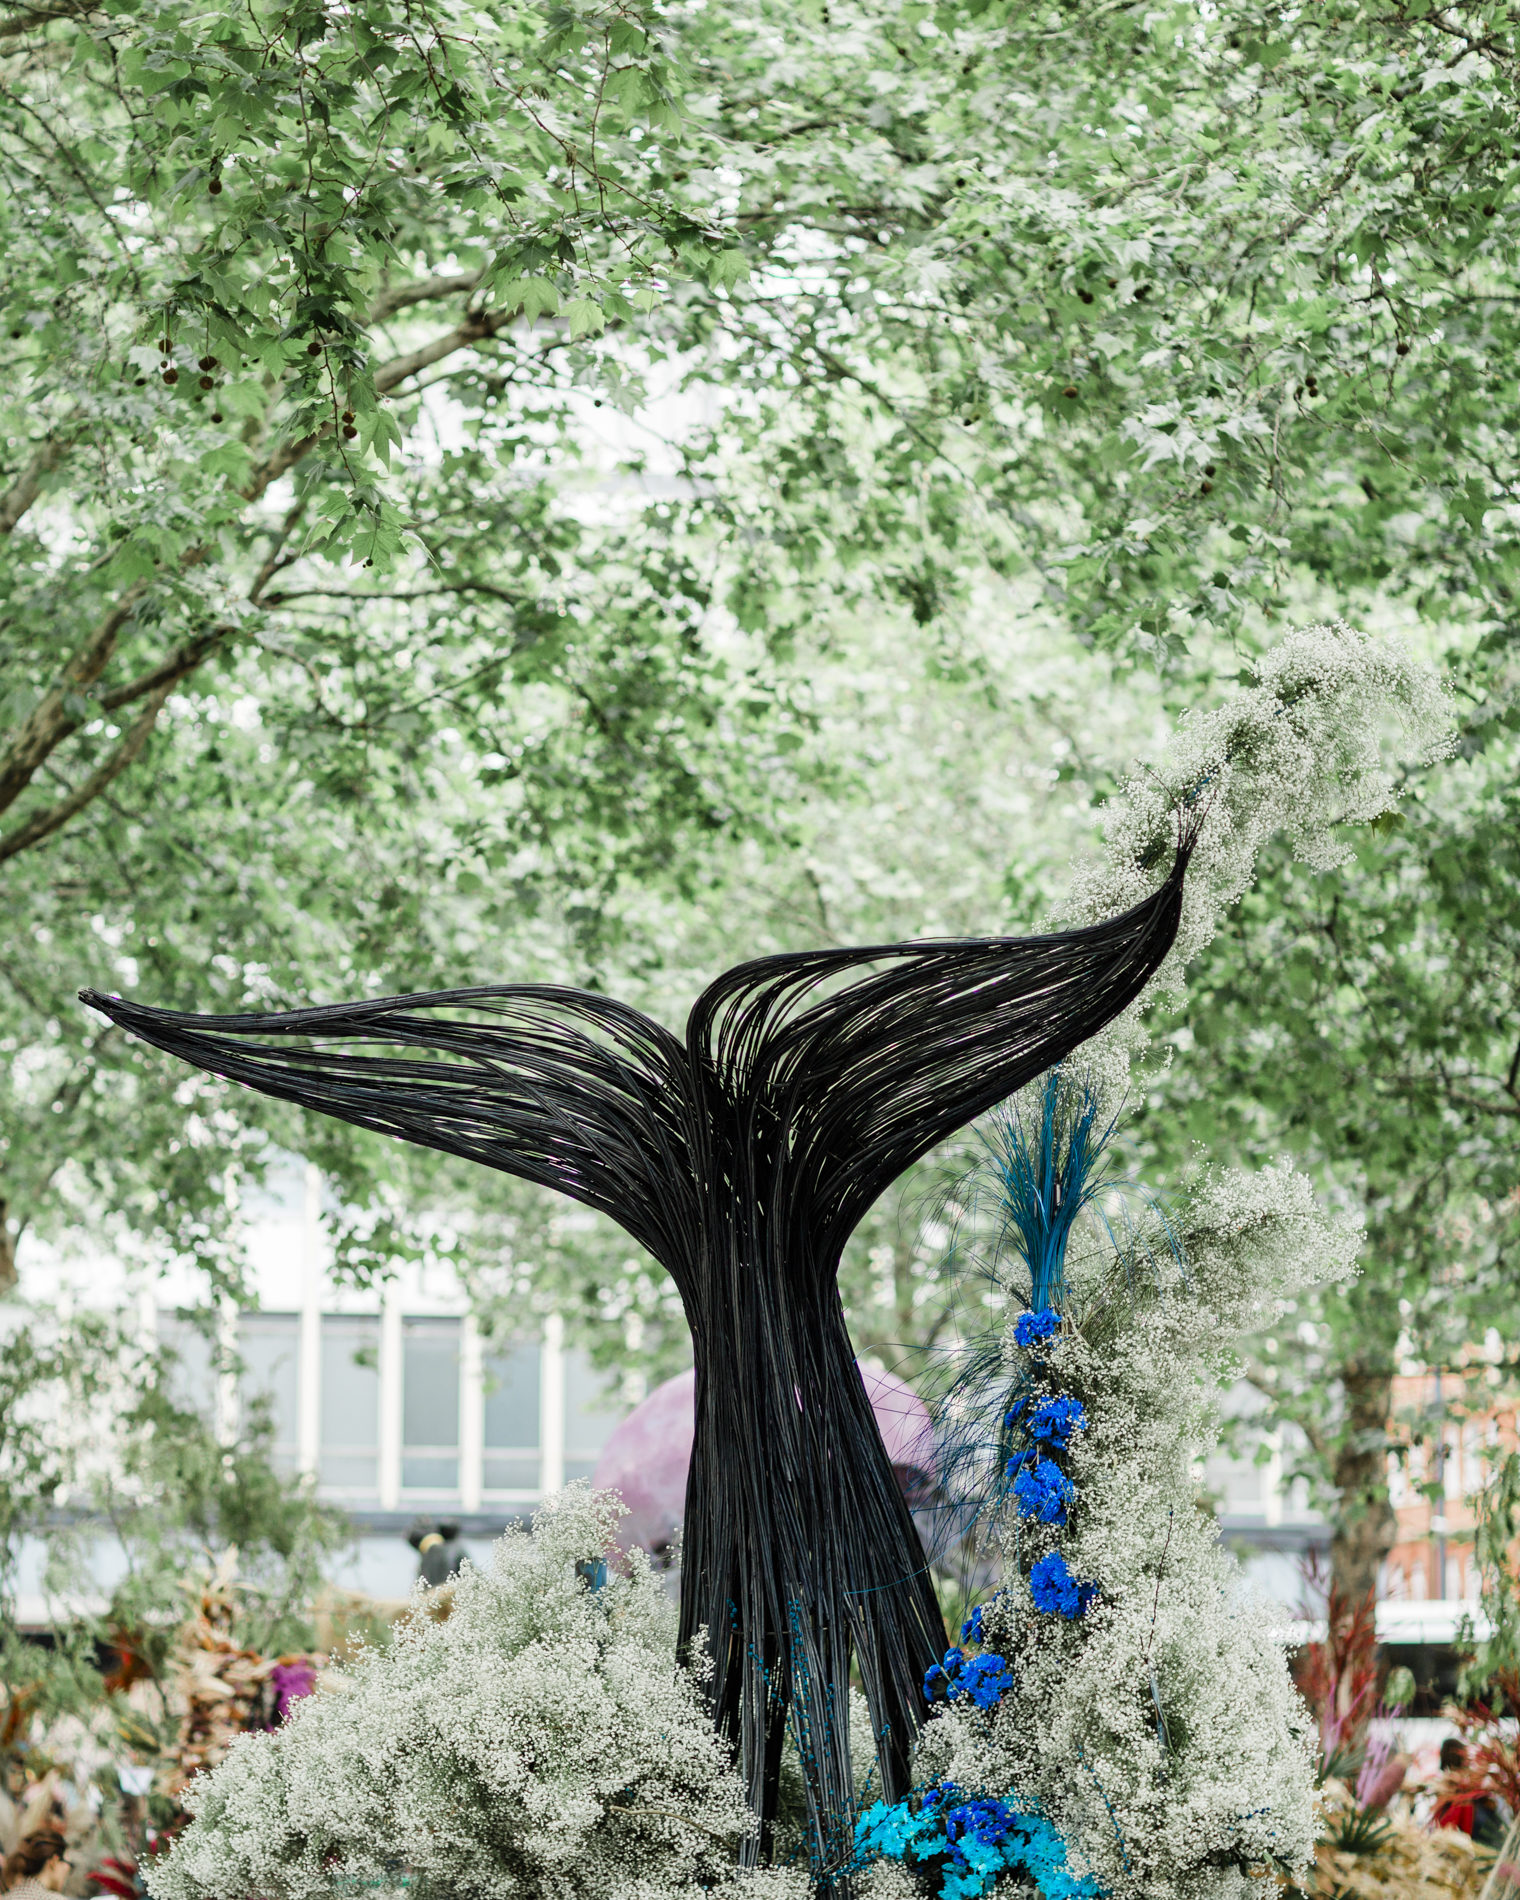 All for Love Floral Installation at Chelsea in Bloom 2019